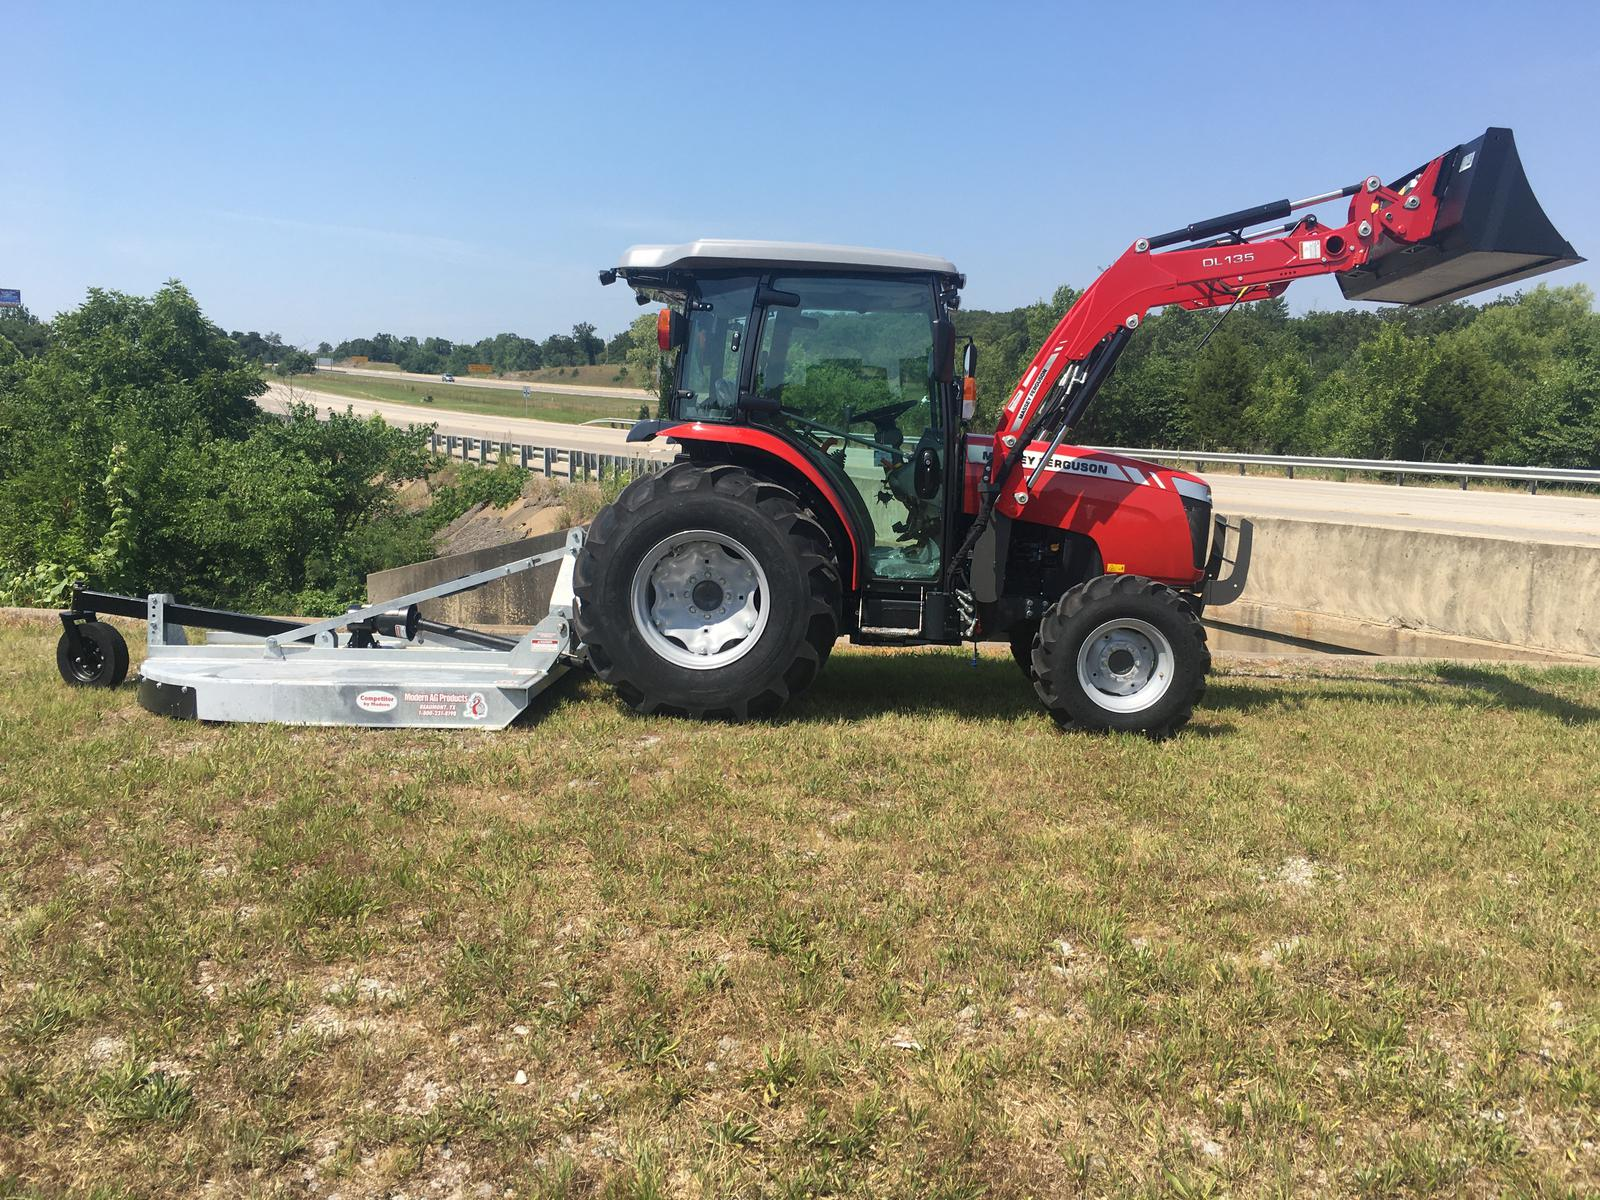 New Inventory From Massey Ferguson And Bad Boy Sutton